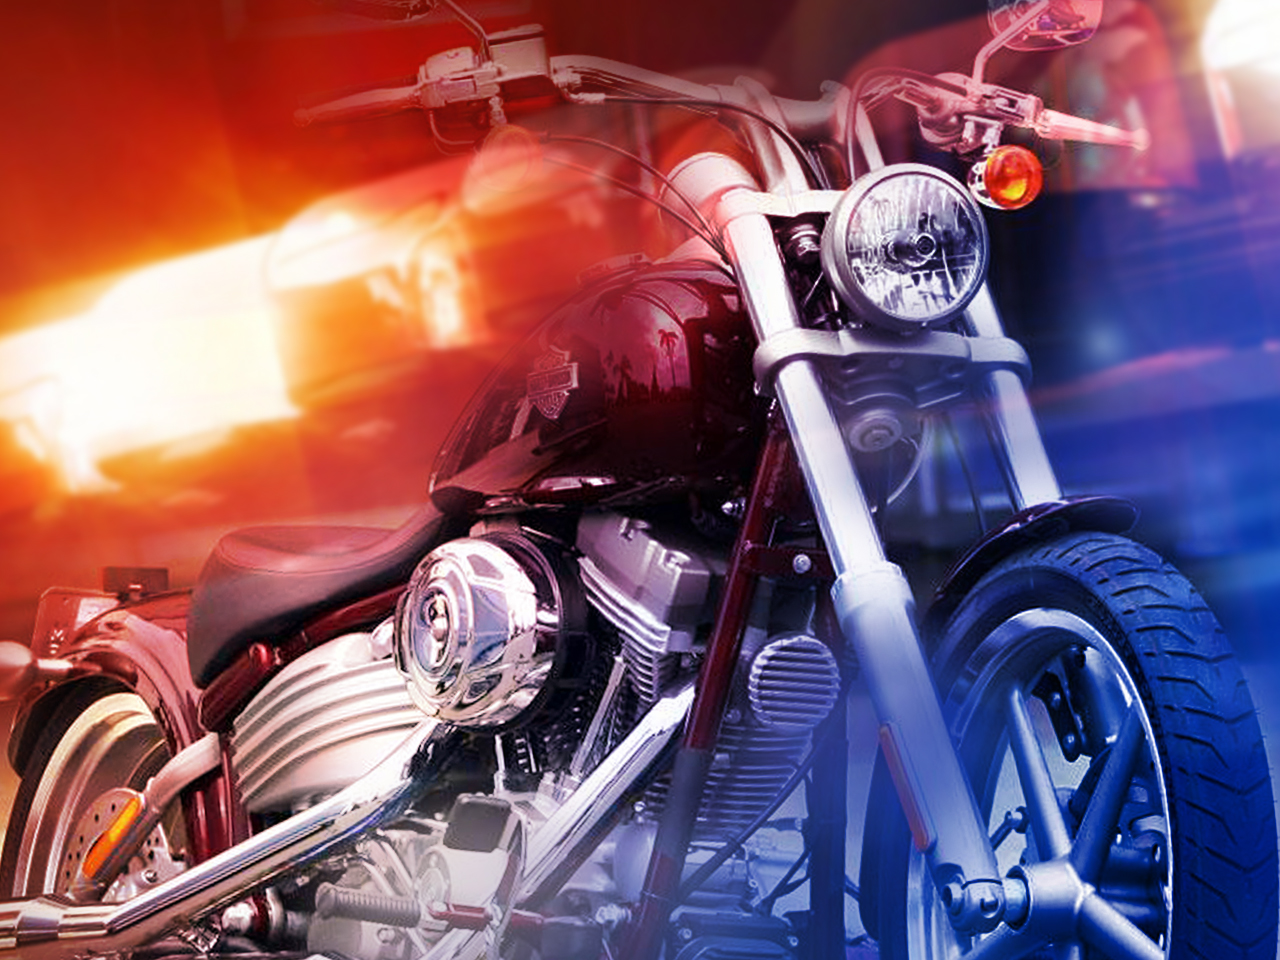 motorcycle crash generic